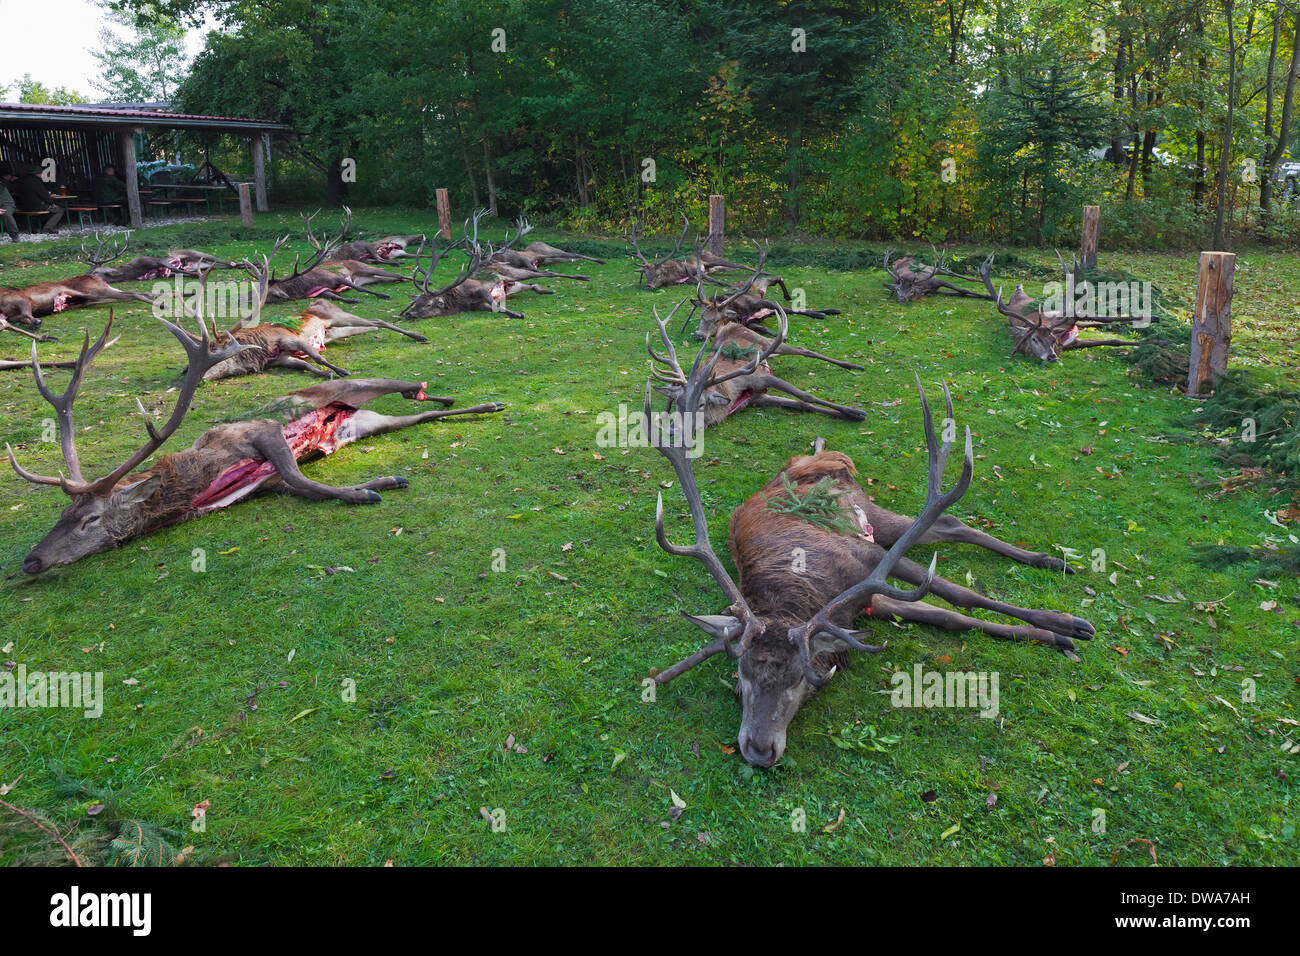 Harvested Red Deer (Cervus elaphus) stags shot and gutted by hunters after the hunt during the hunting season in autumn - Stock Image